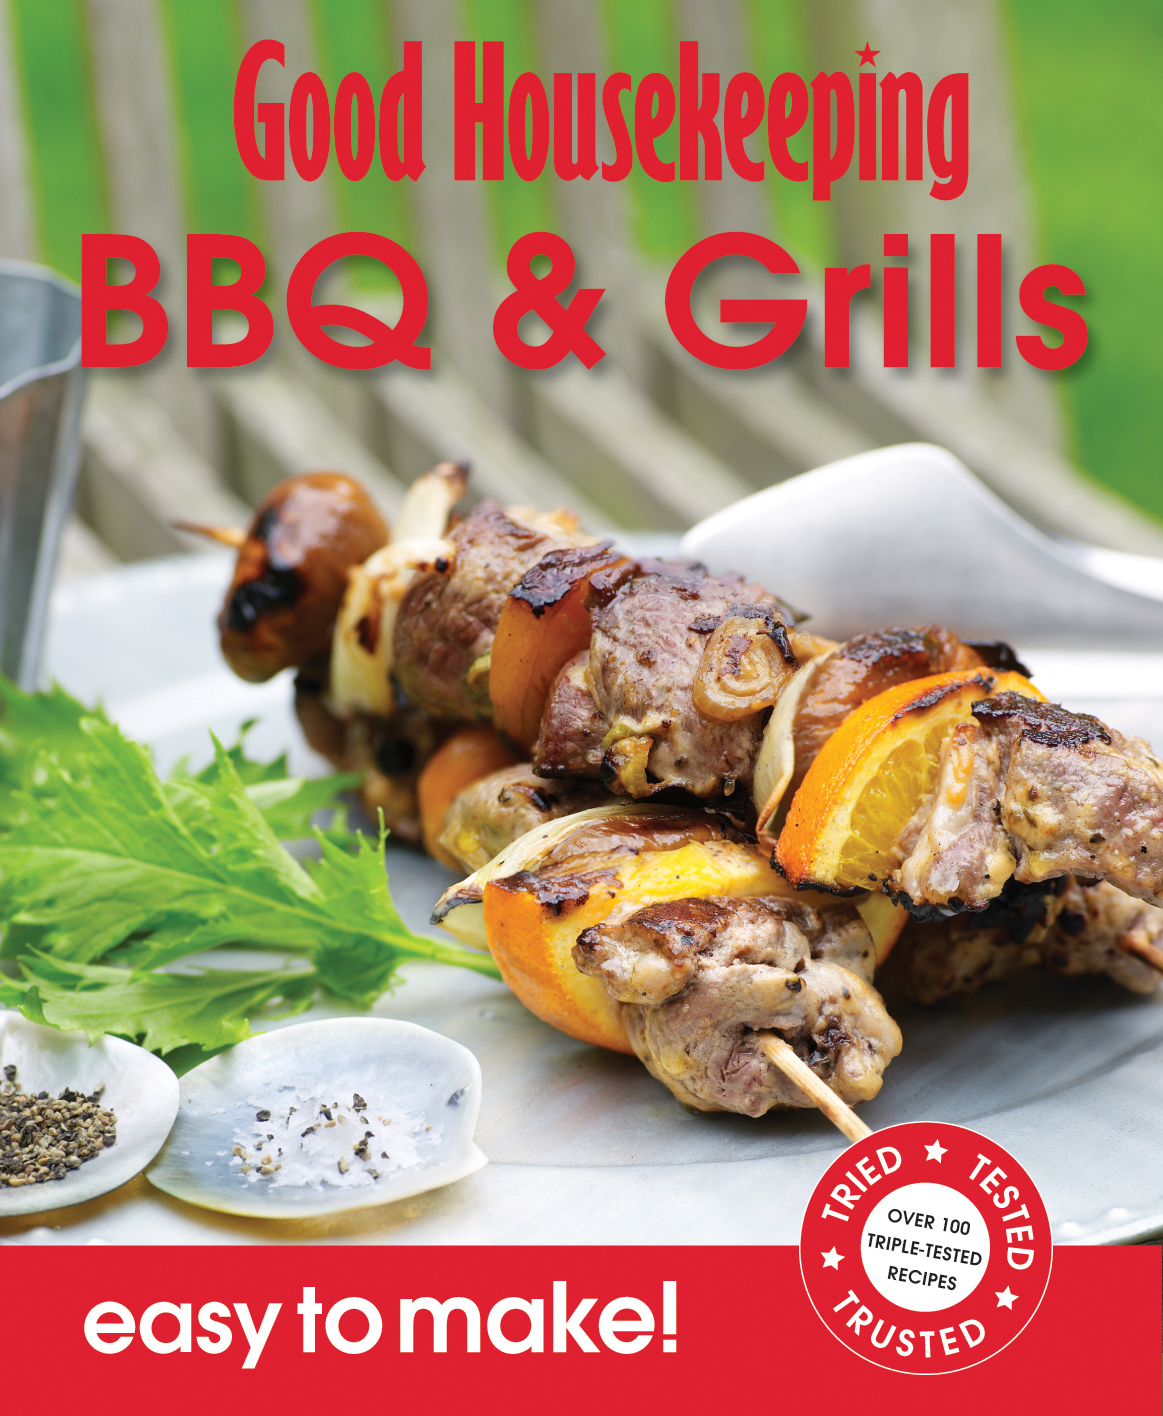 Good Housekeeping Easy to Make! BBQ & Grills